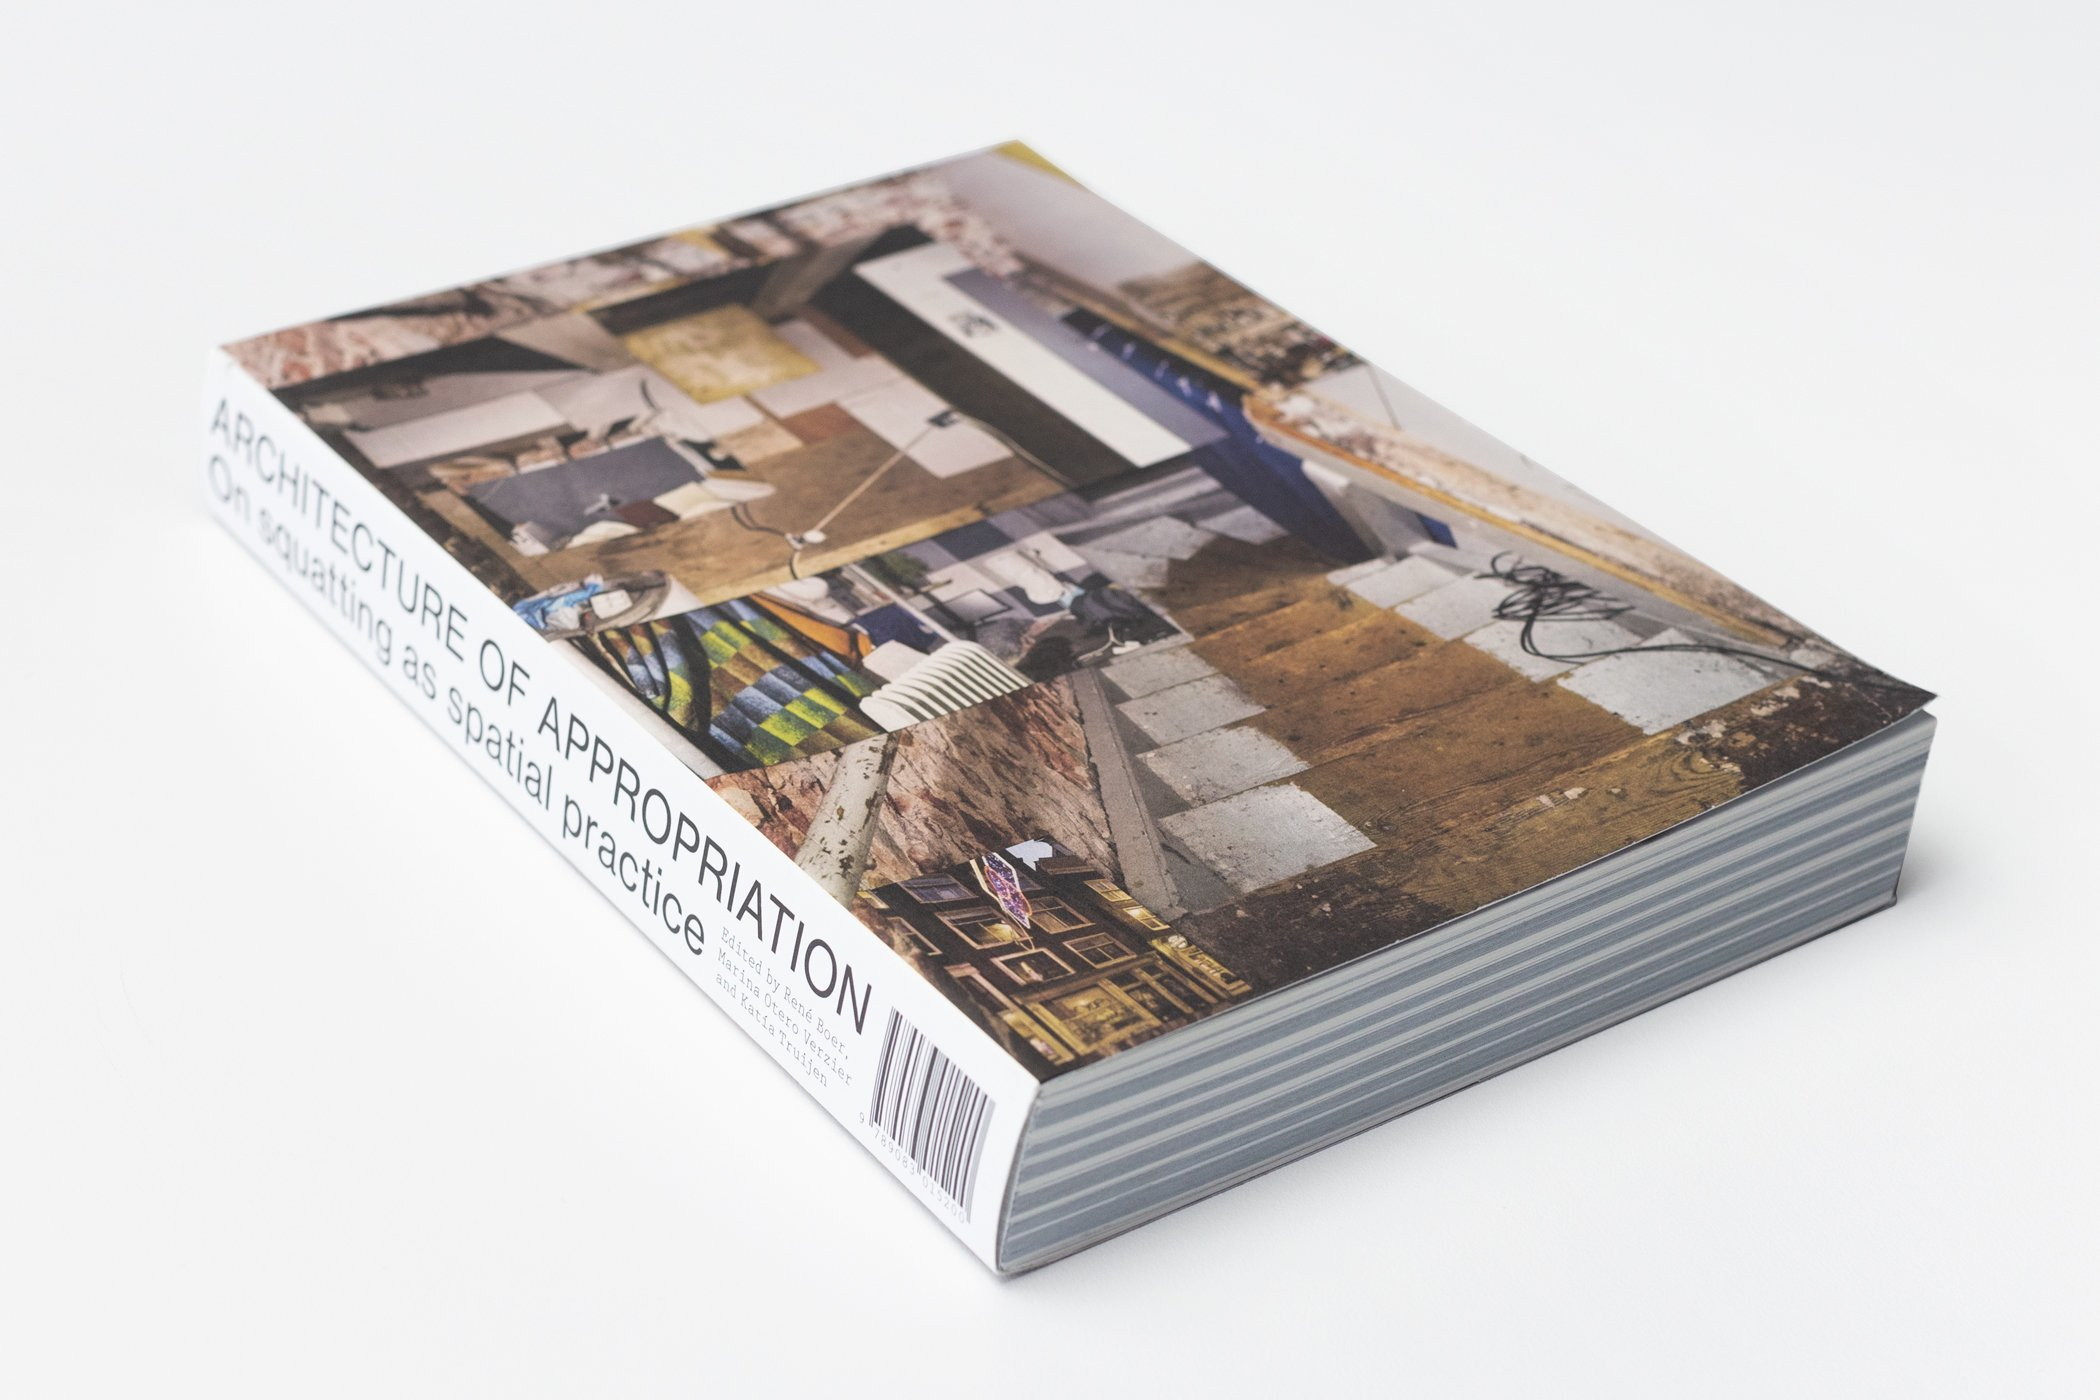 Het boek Architecture of Appropriation. On Squatting as spatial practice. Maud Vervenne